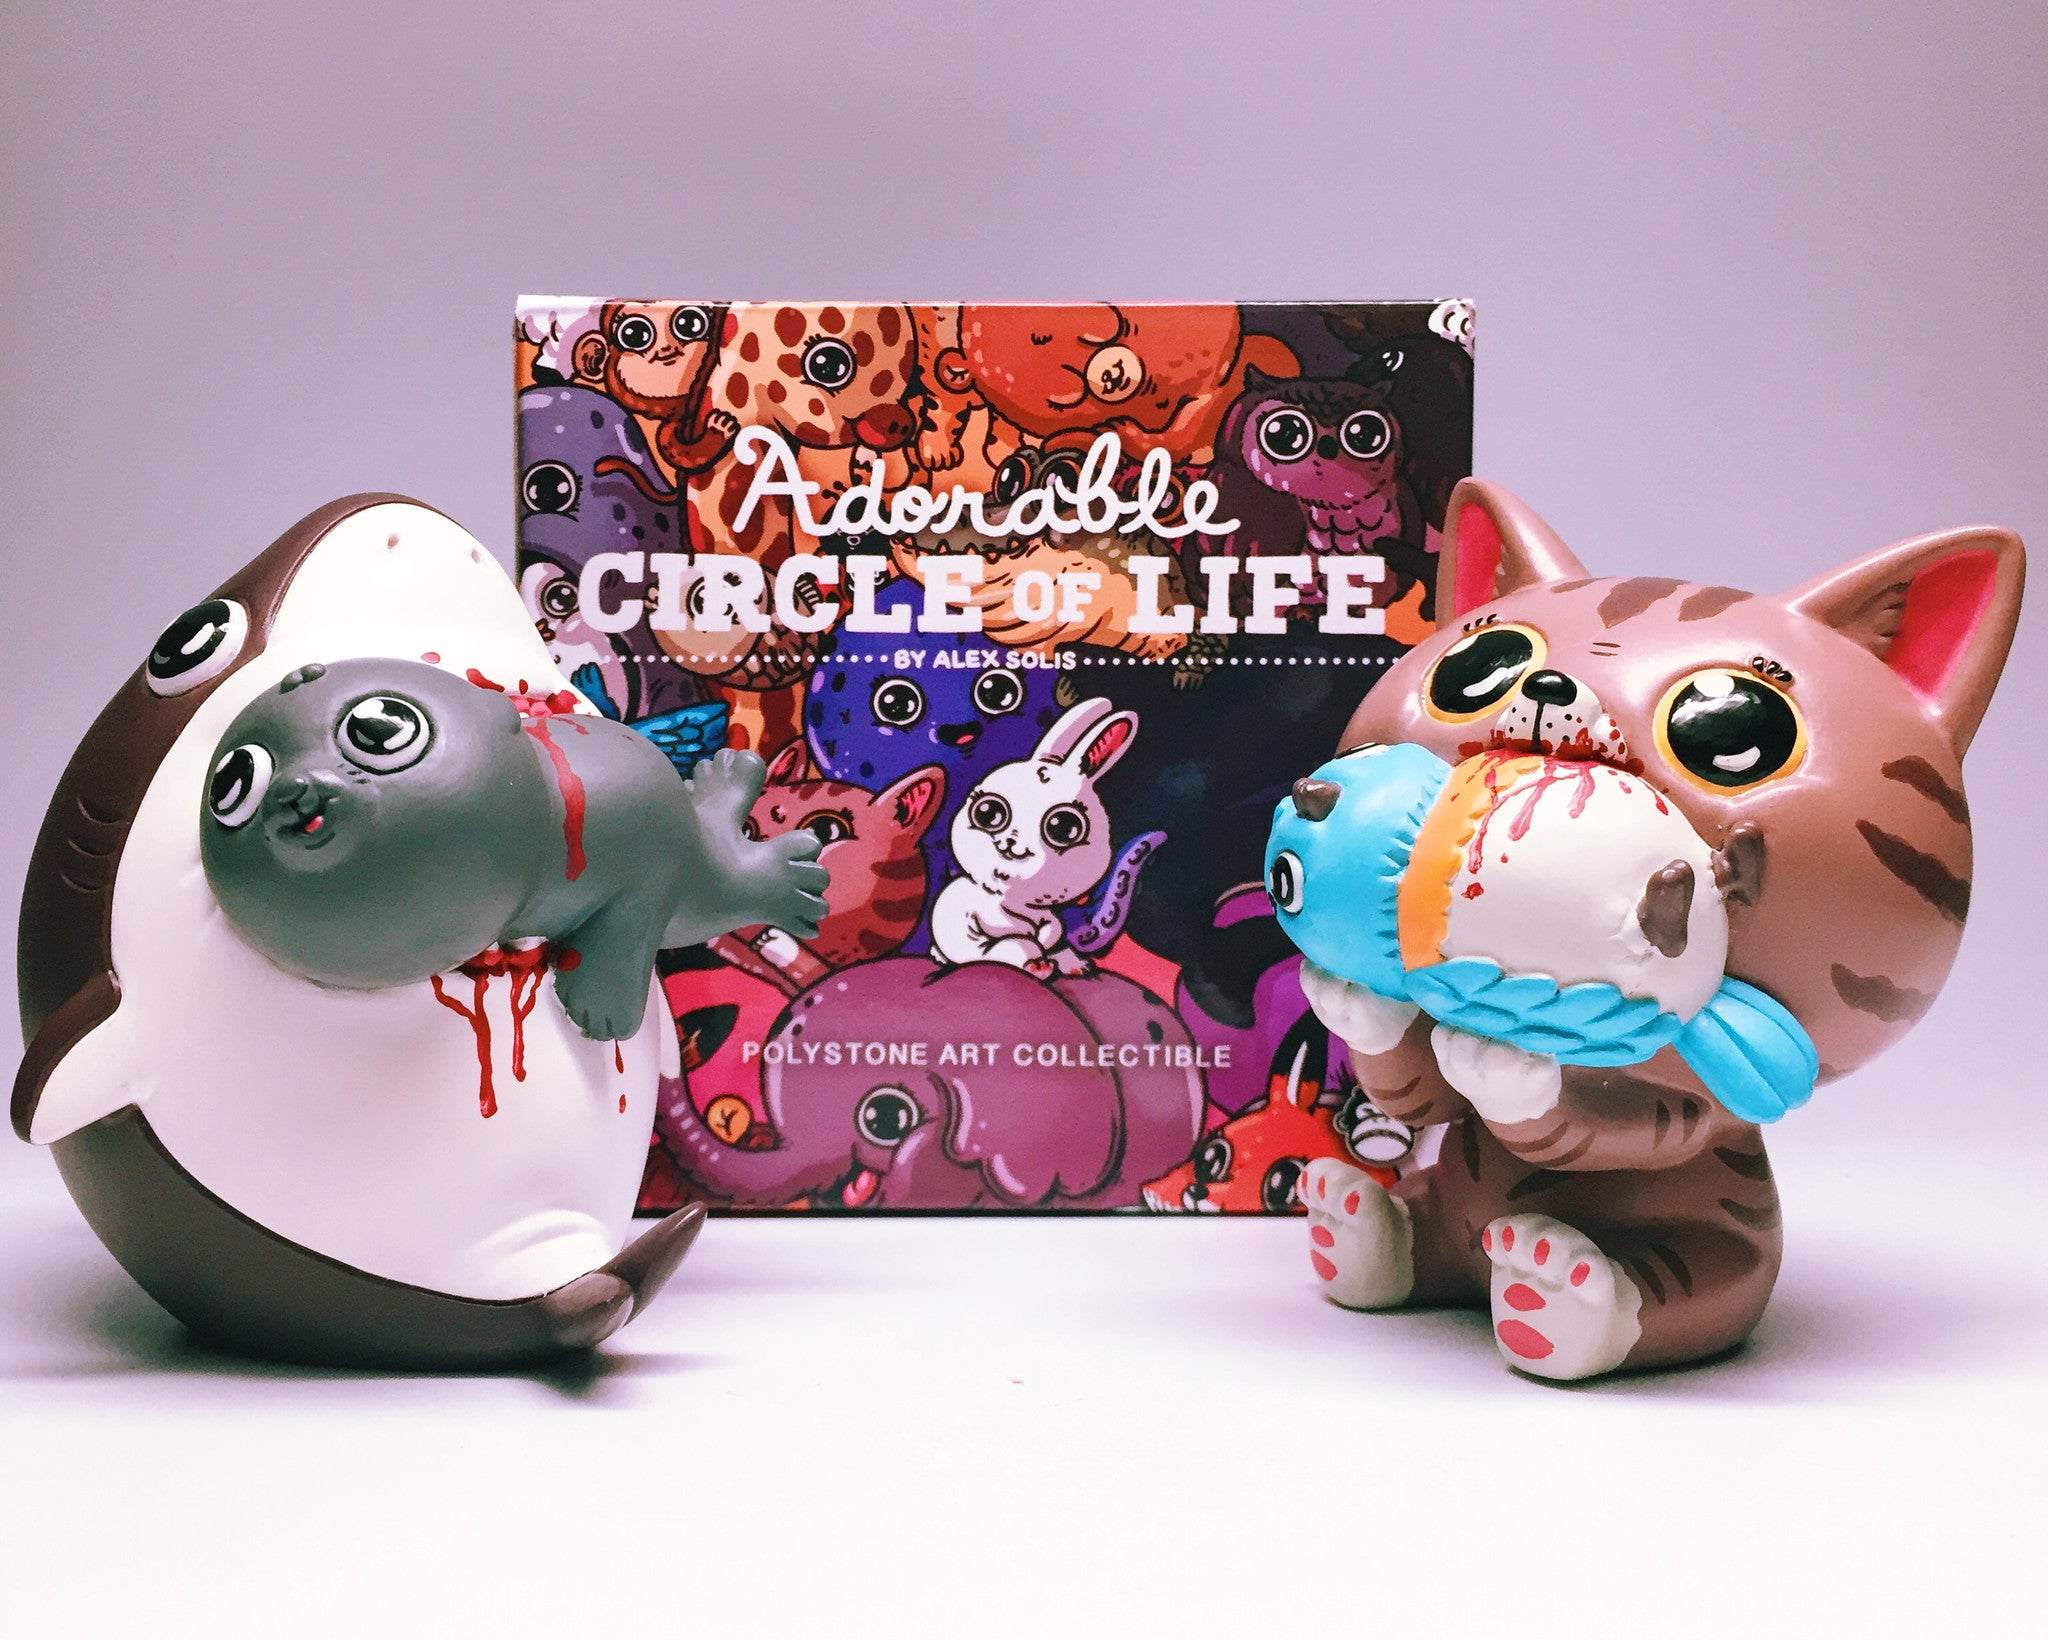 Adorable Circle of Life Toys!